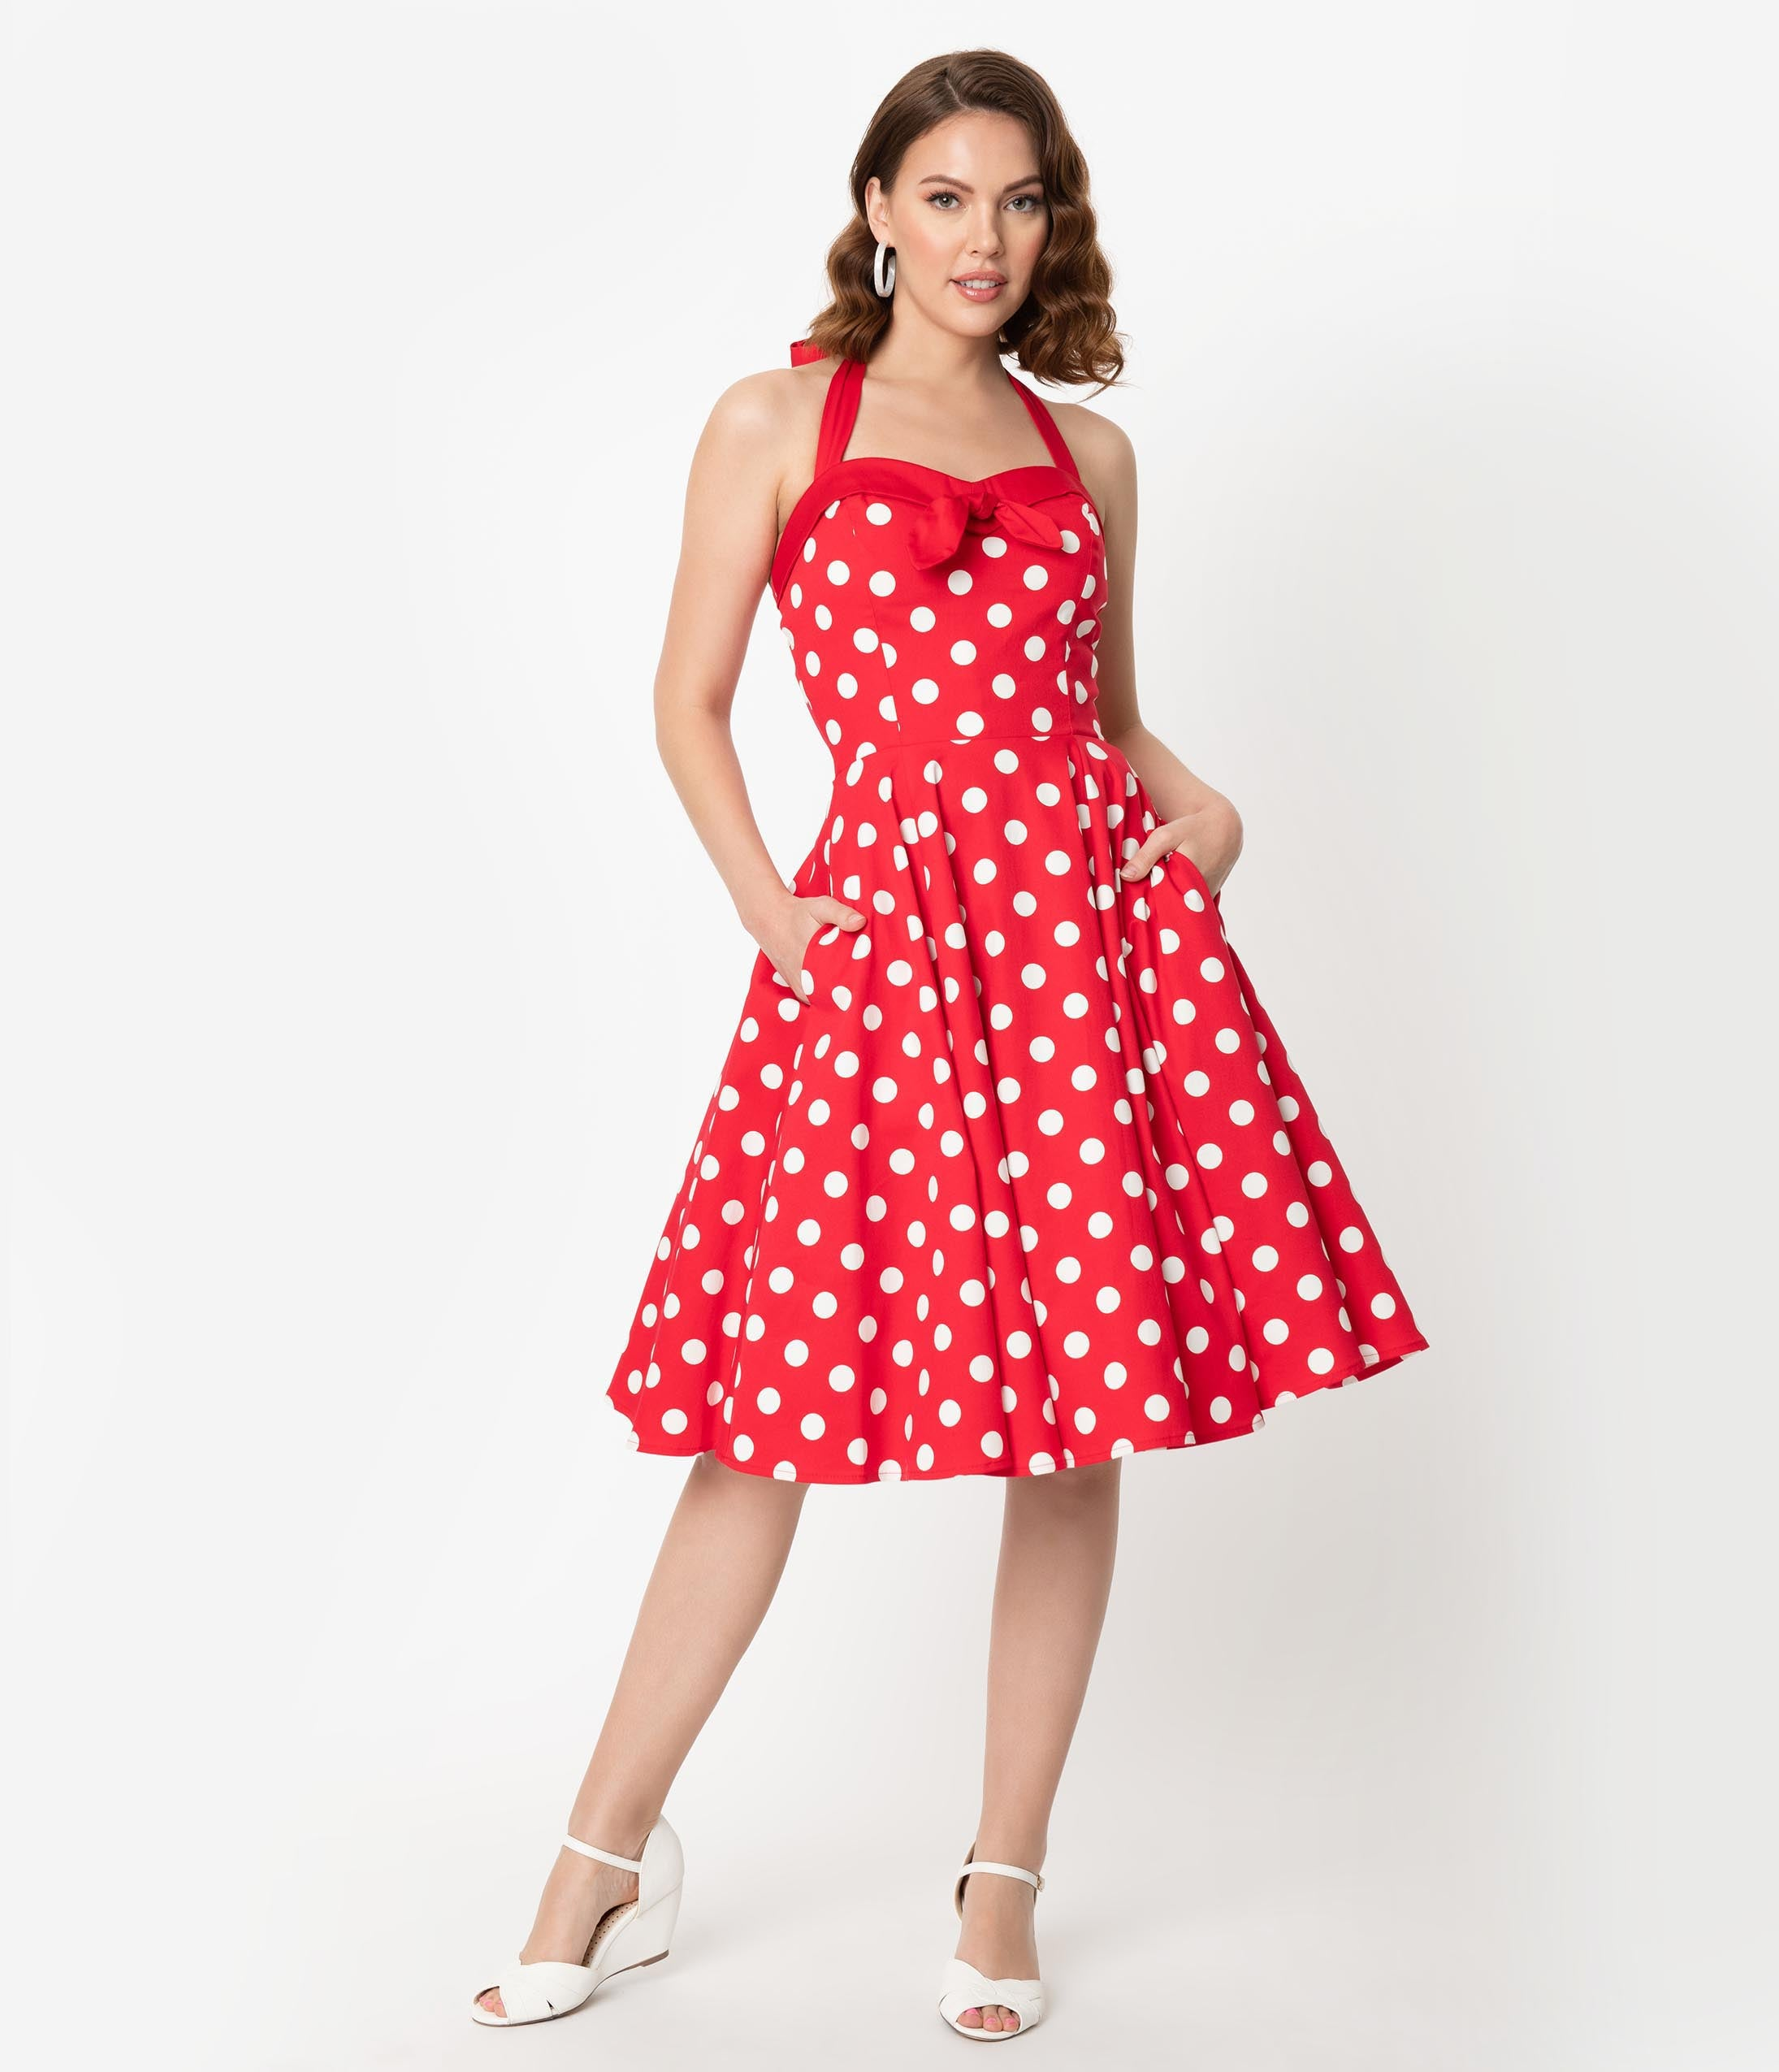 de3a505c9b Vintage Polka Dot Dresses – 50s Spotty and Ditsy Prints Vintage Style Red  White Polka Dot